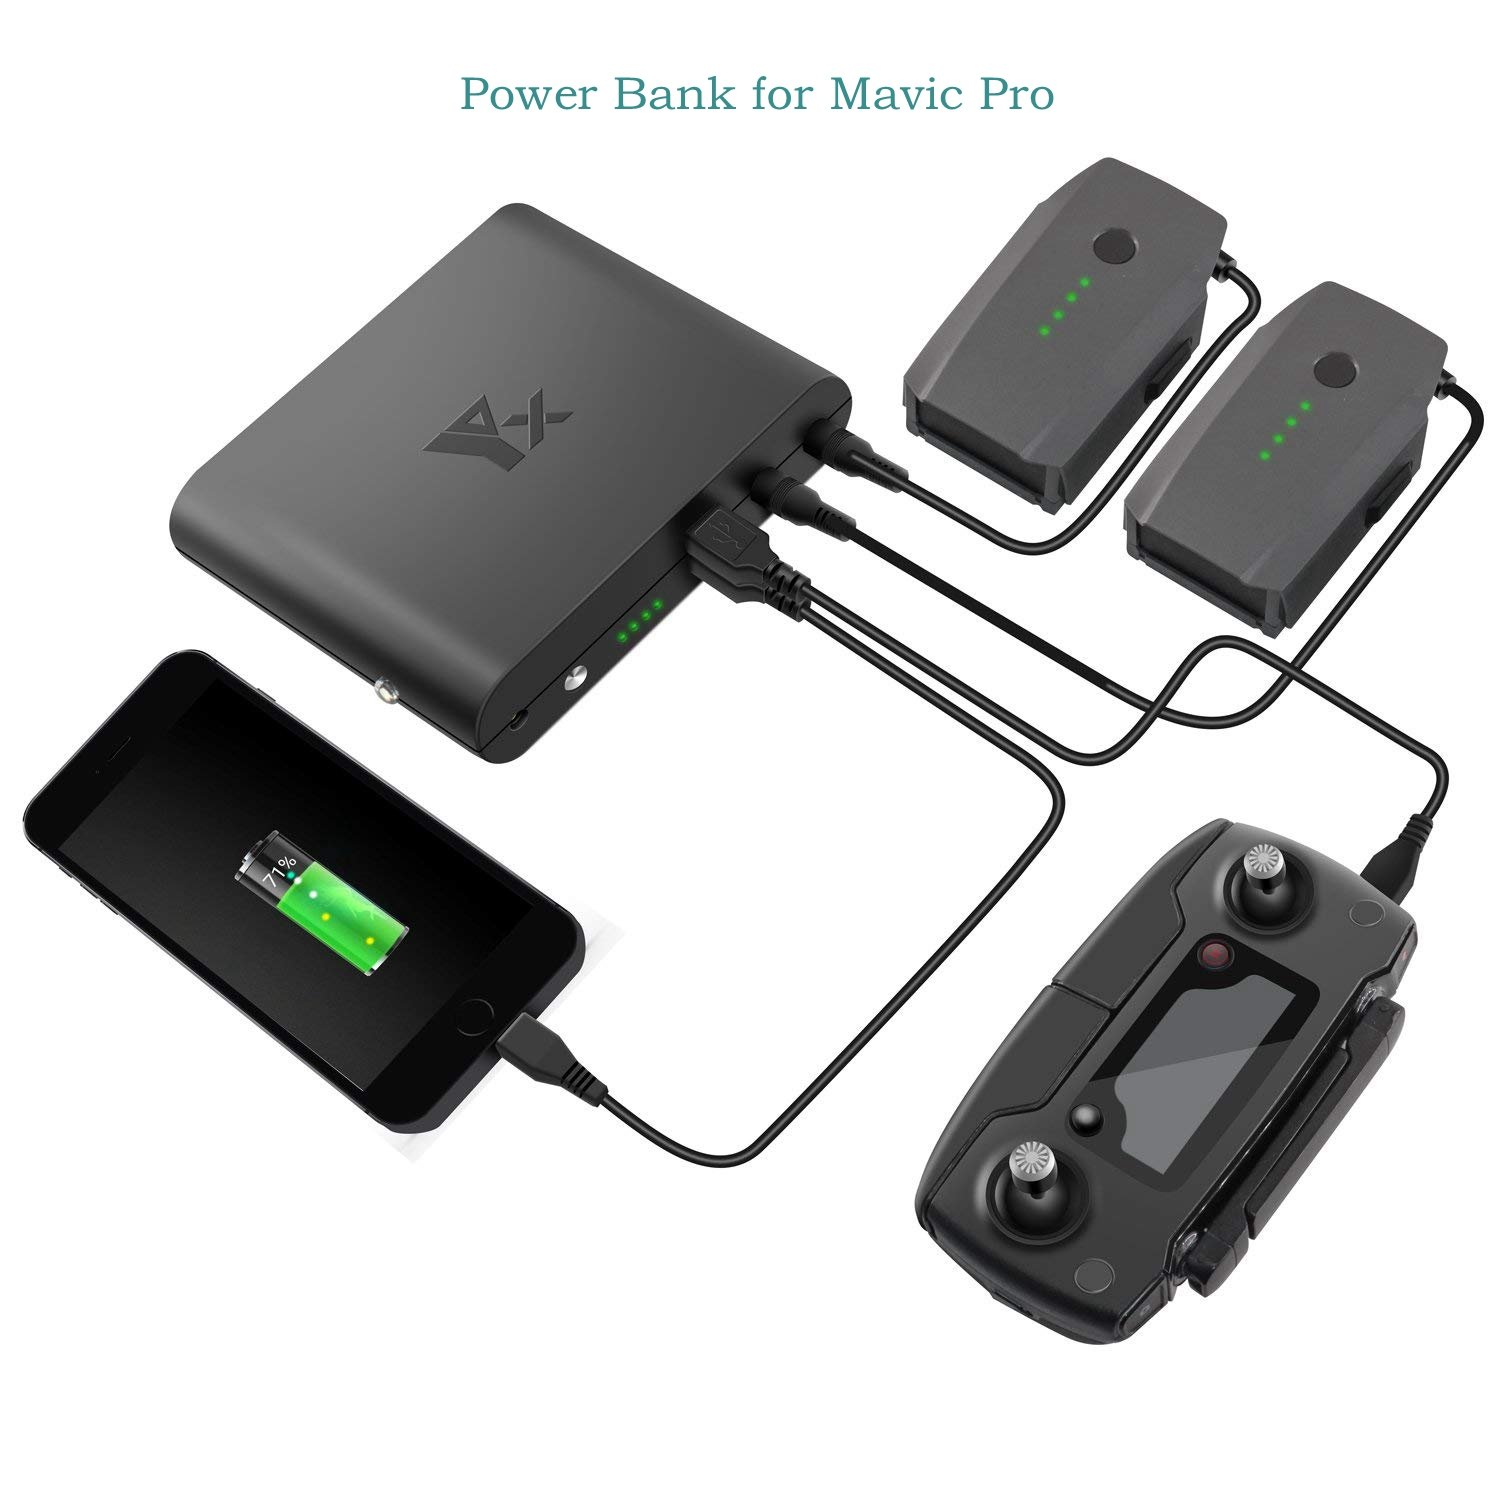 8b344afb84e RCstyle Portable 25000mAh Power Bank Battery and Remote Control 2 UBS  Output for DJI DJI Mavic Pro/Platinum Outdoor Chargers Accessories, Battery  Chargers ...